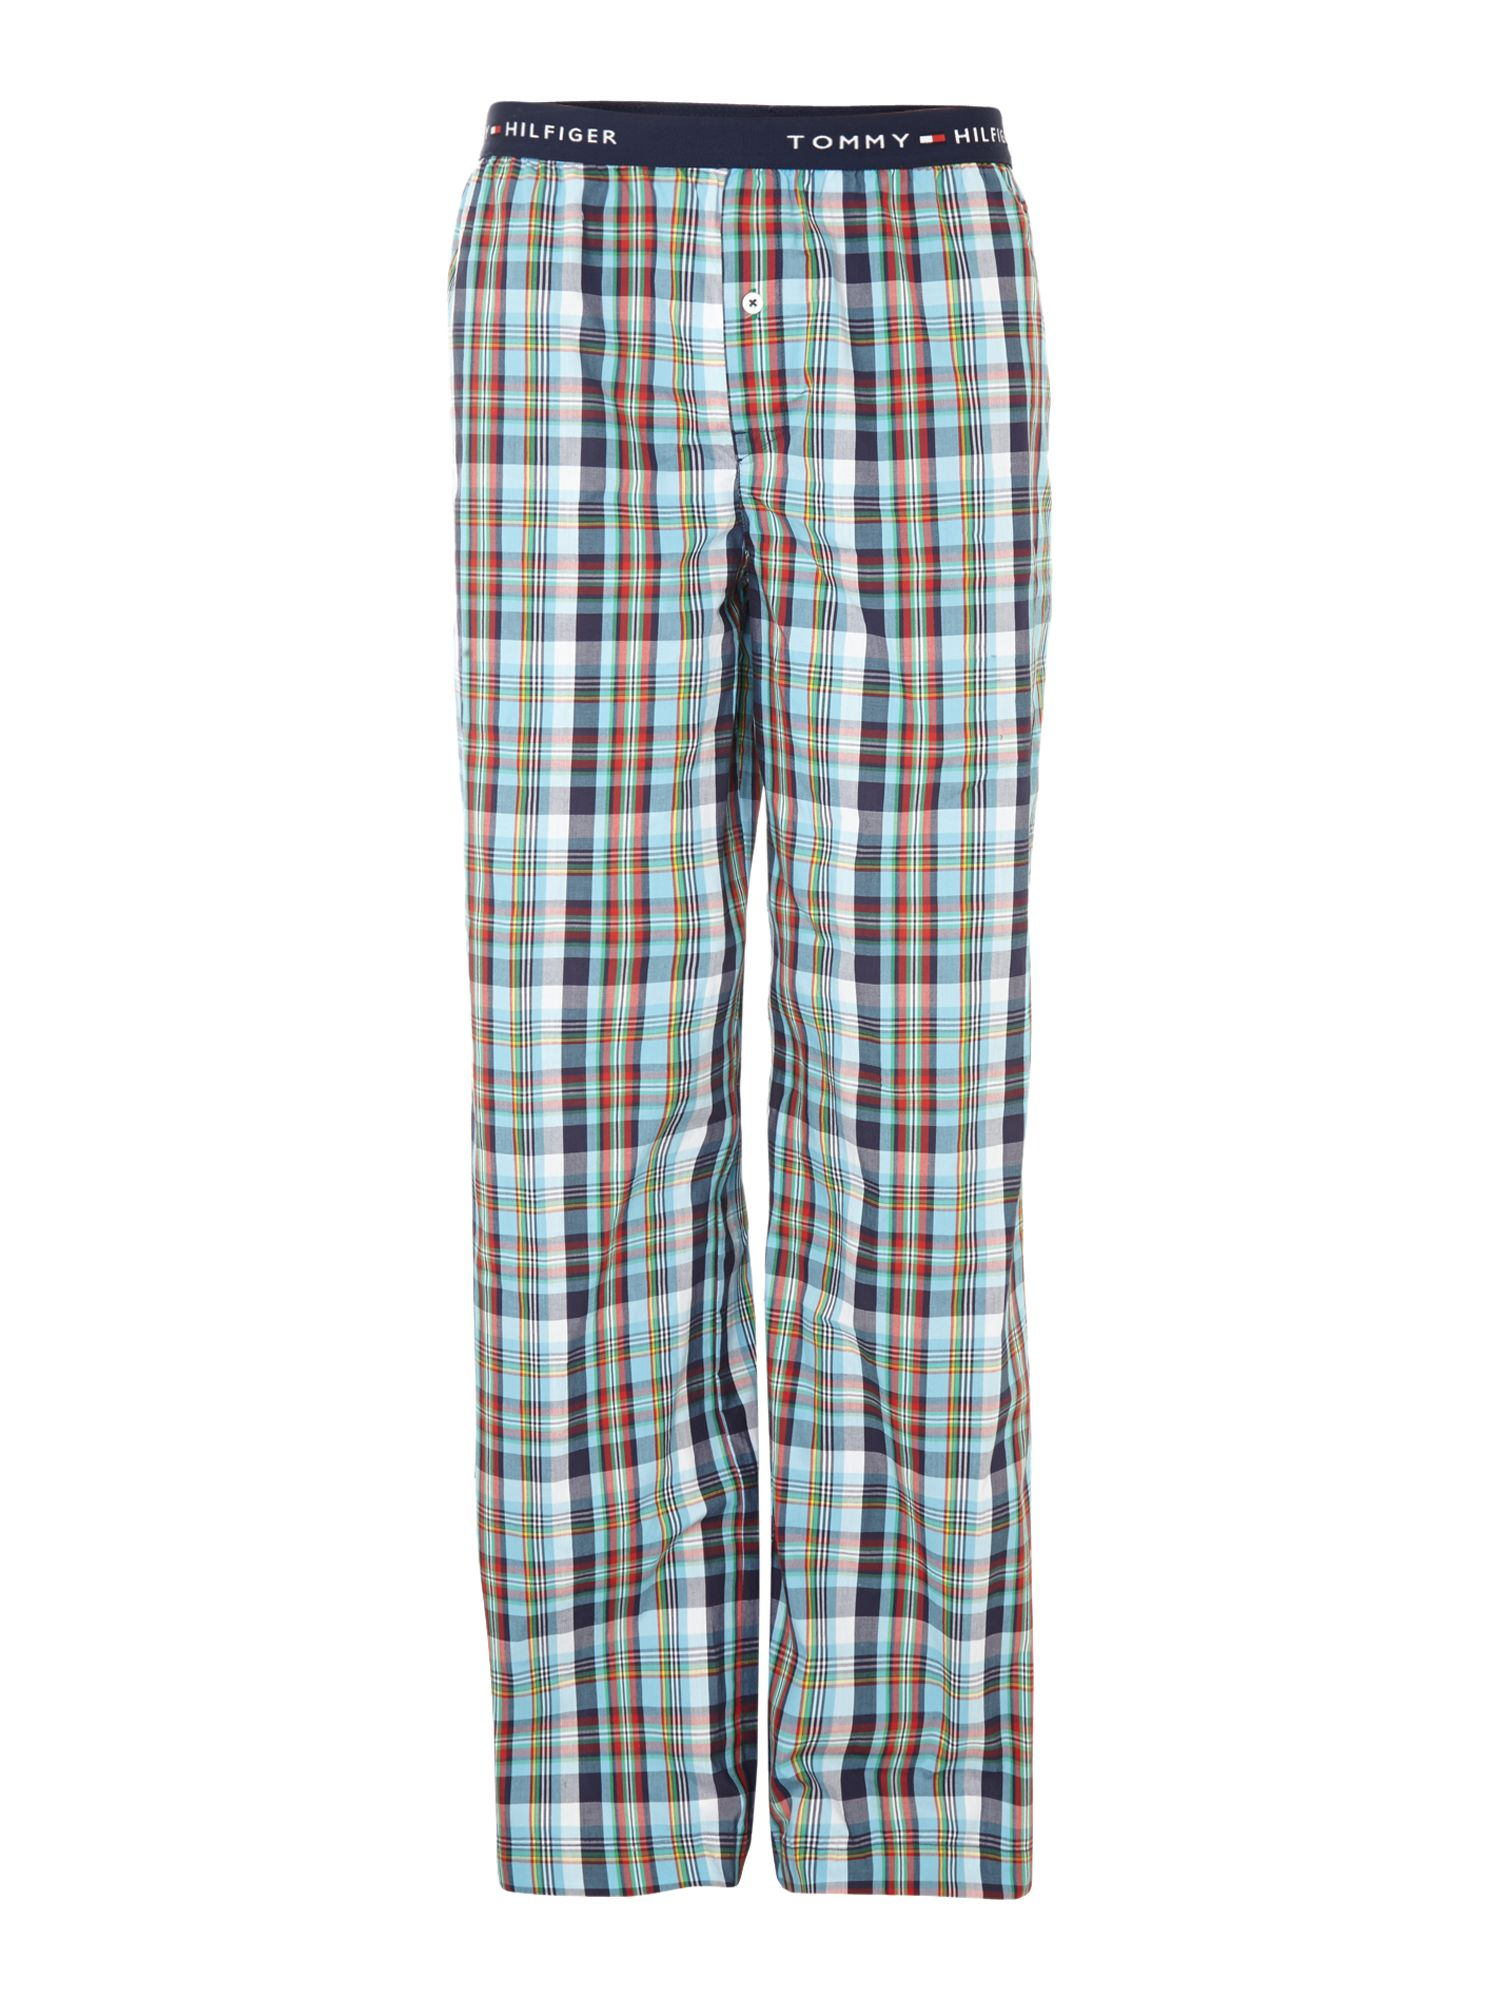 Multi check woven nightwear pant